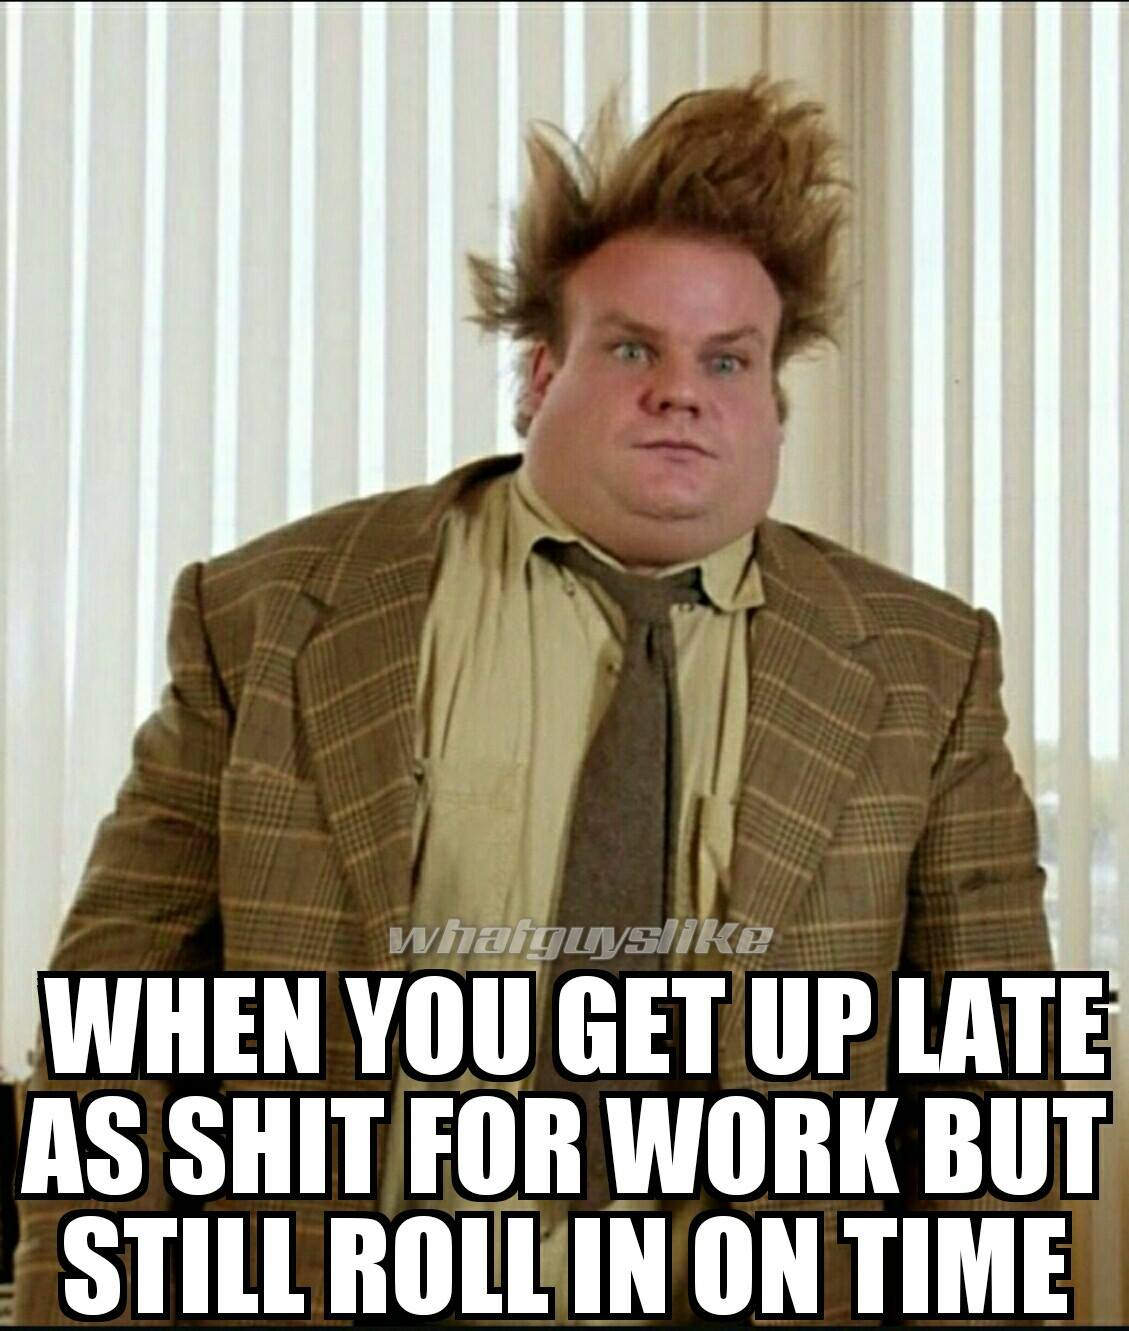 funny work meme when you get up late for work but funny office humor lol